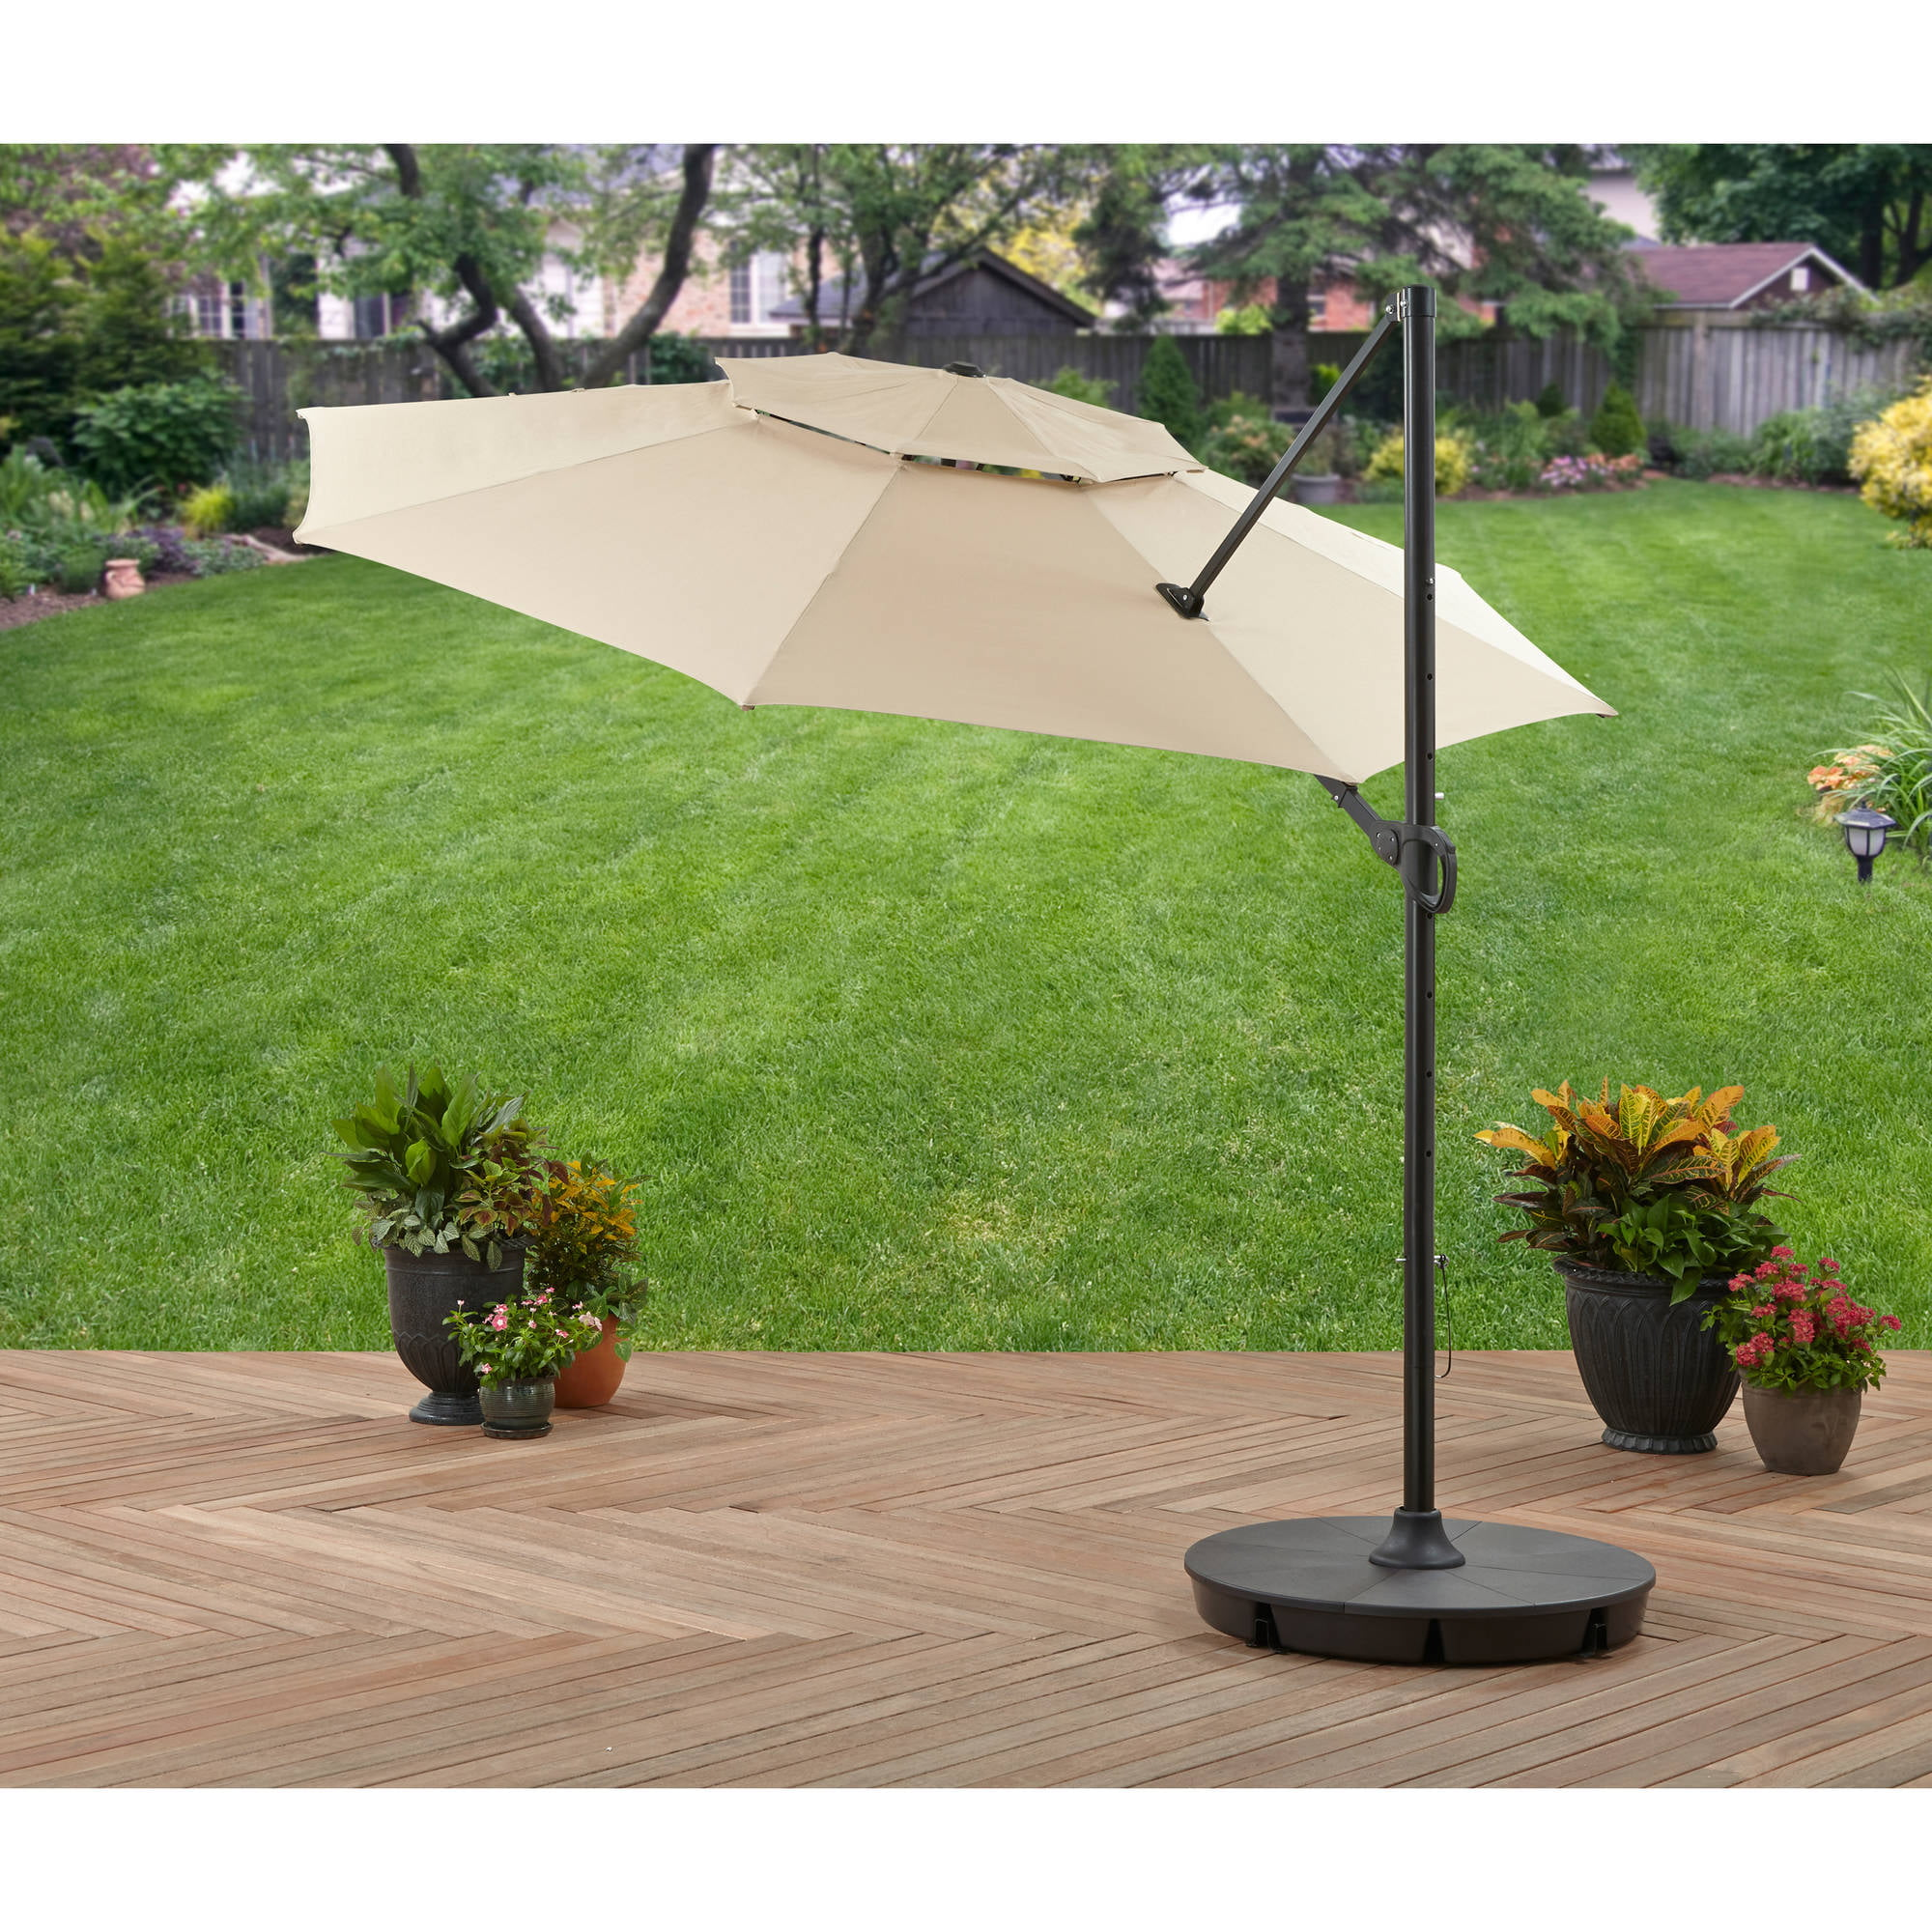 Better Homes and Gardens 11' Offset Umbrella with Base, Tan by Ningbo Evertluck Outdoor Products Manufacturing Co.,Ltd